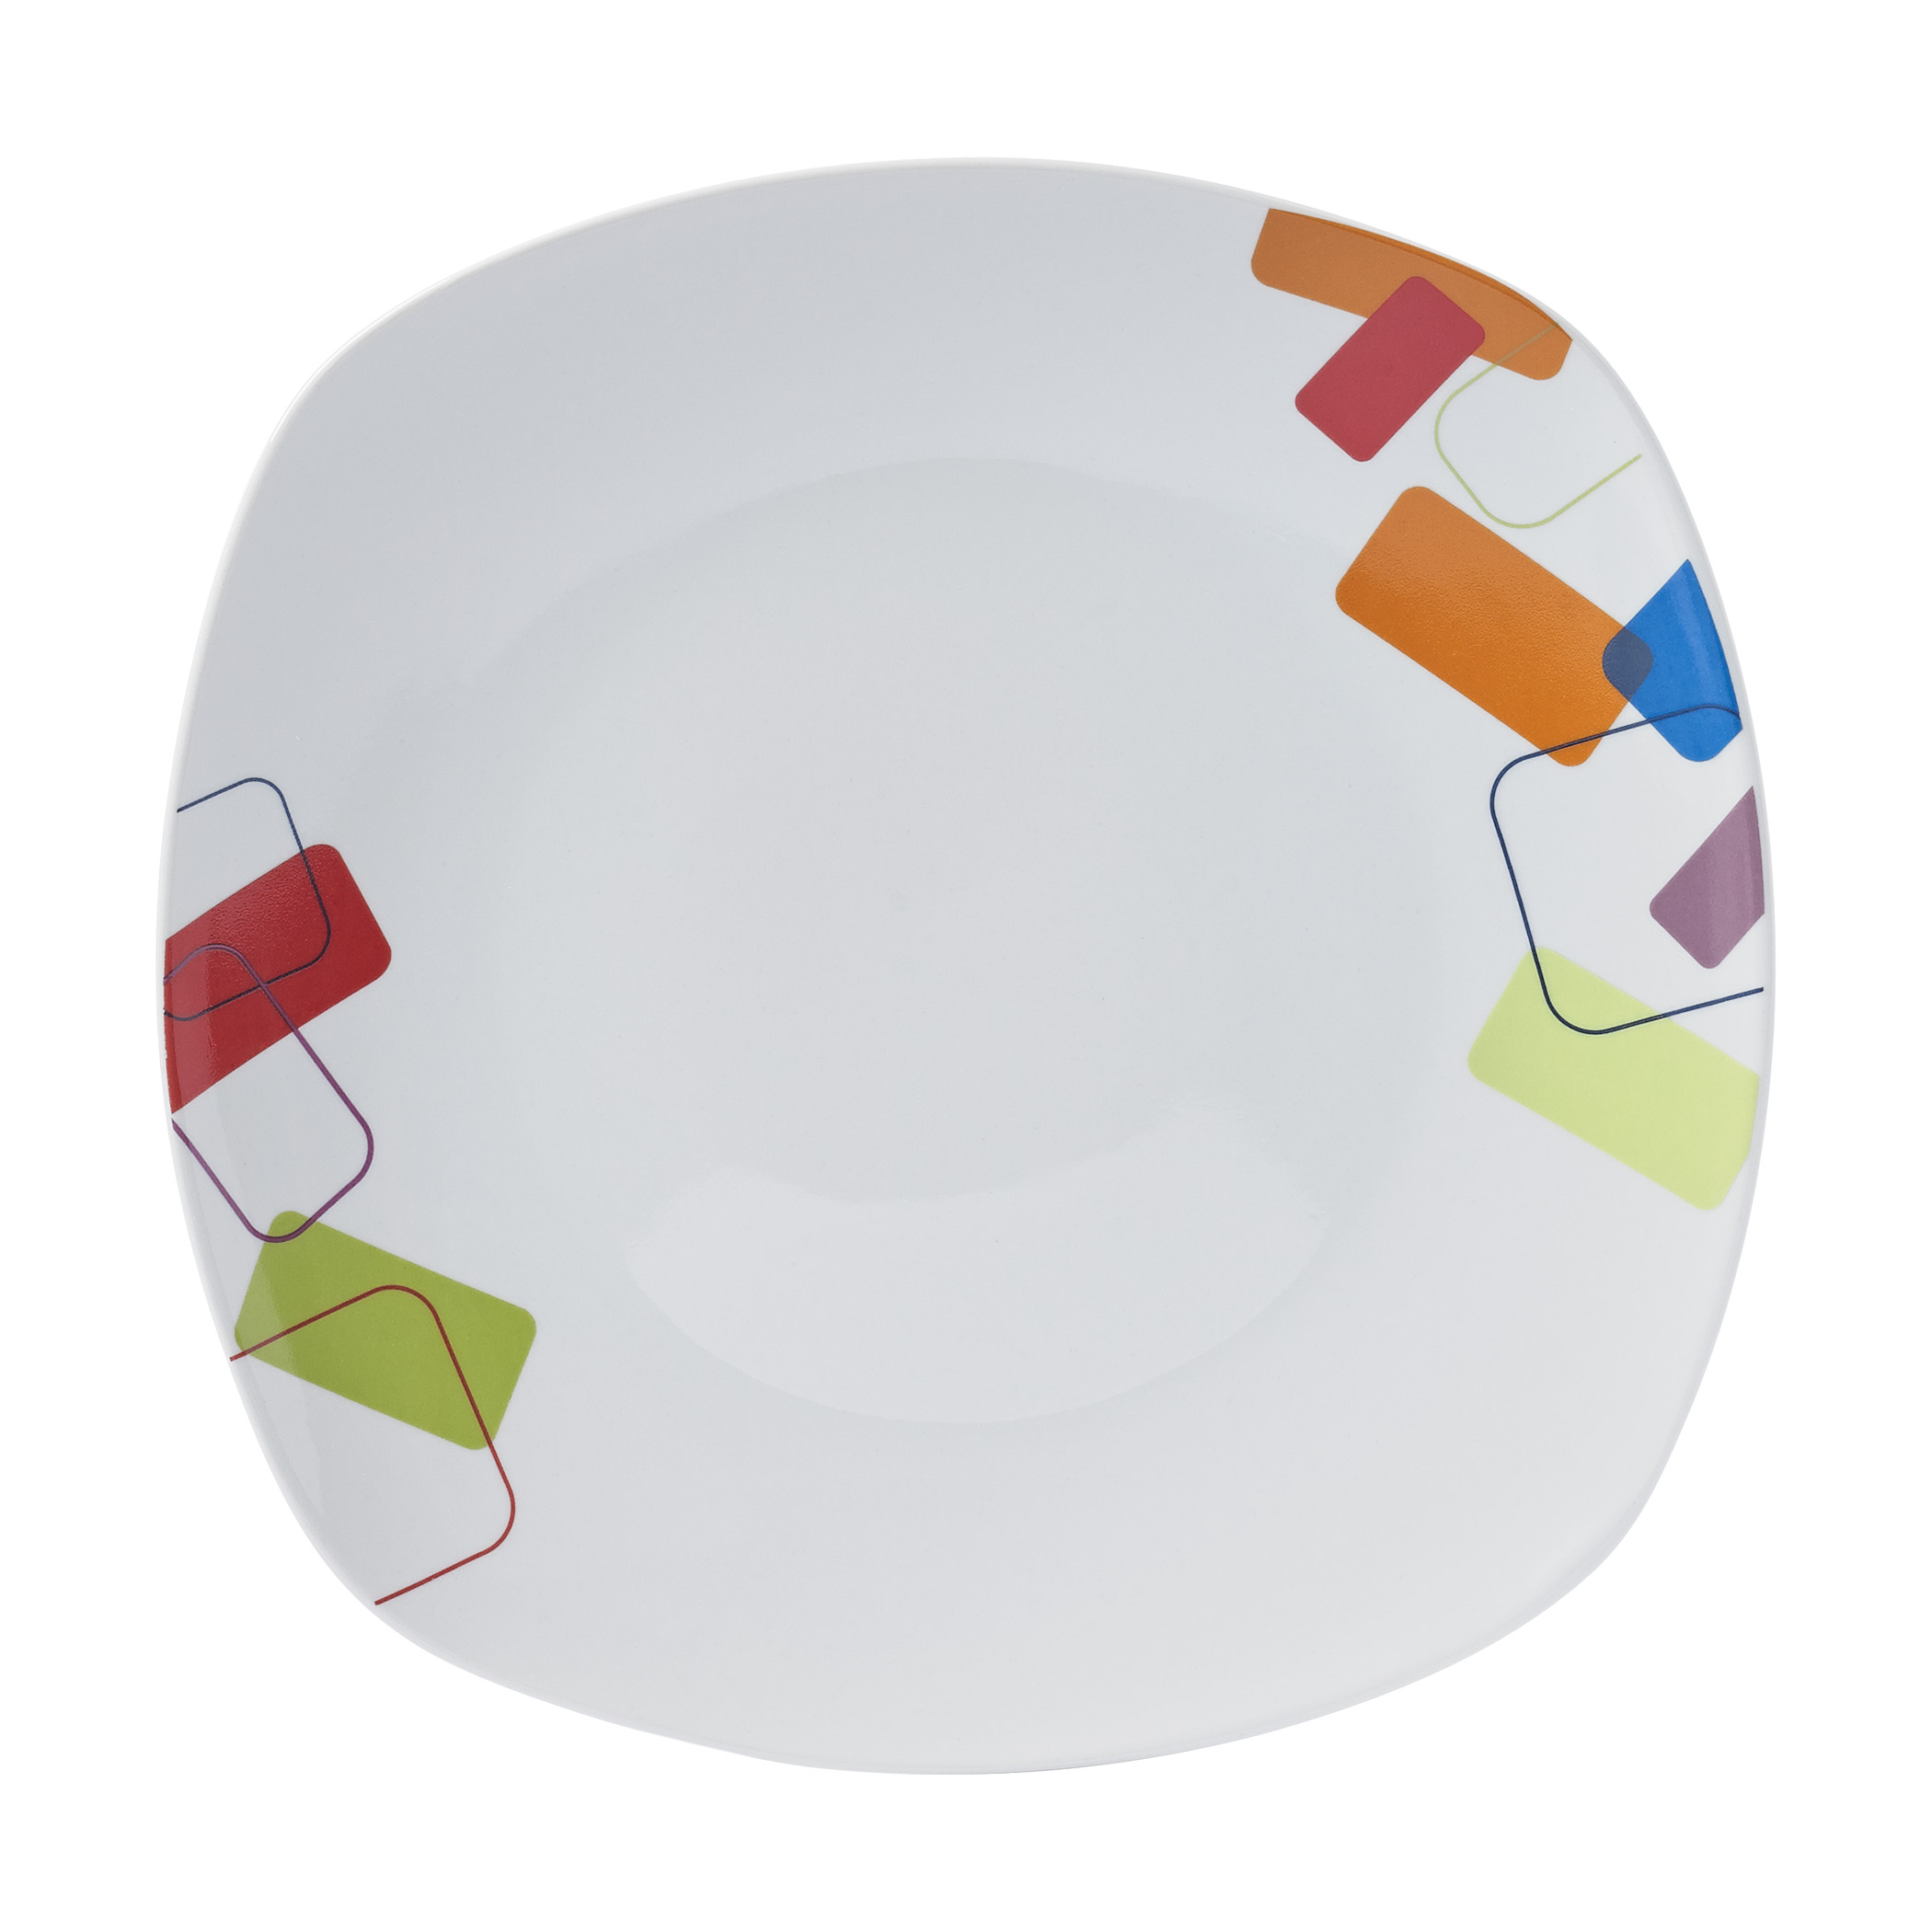 ... Tabletops Gallery · TTU T4250 EC 16 Piece Porcelain Dinnerware Set By  Tabletops Gallery_1 ...